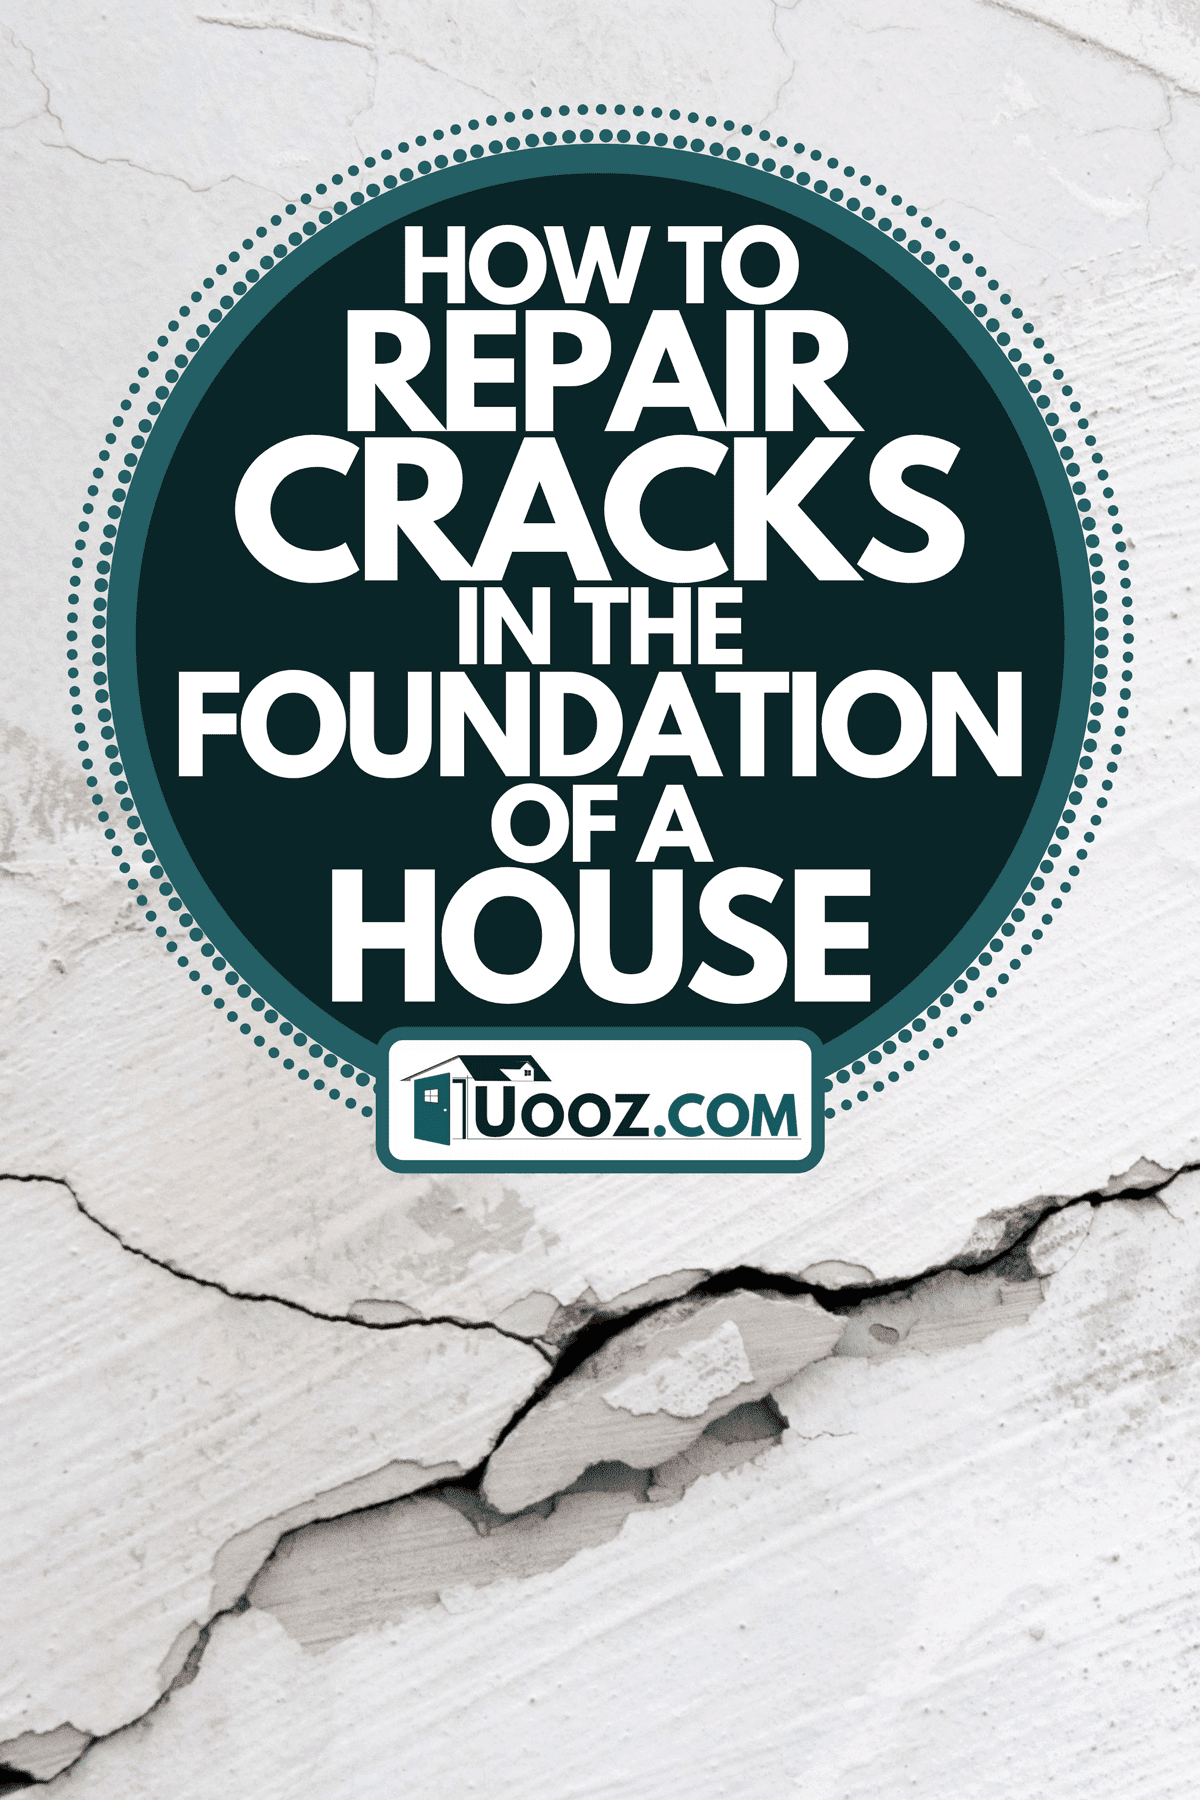 A close up of cracking wall, How To Repair Cracks In The Foundation Of A House